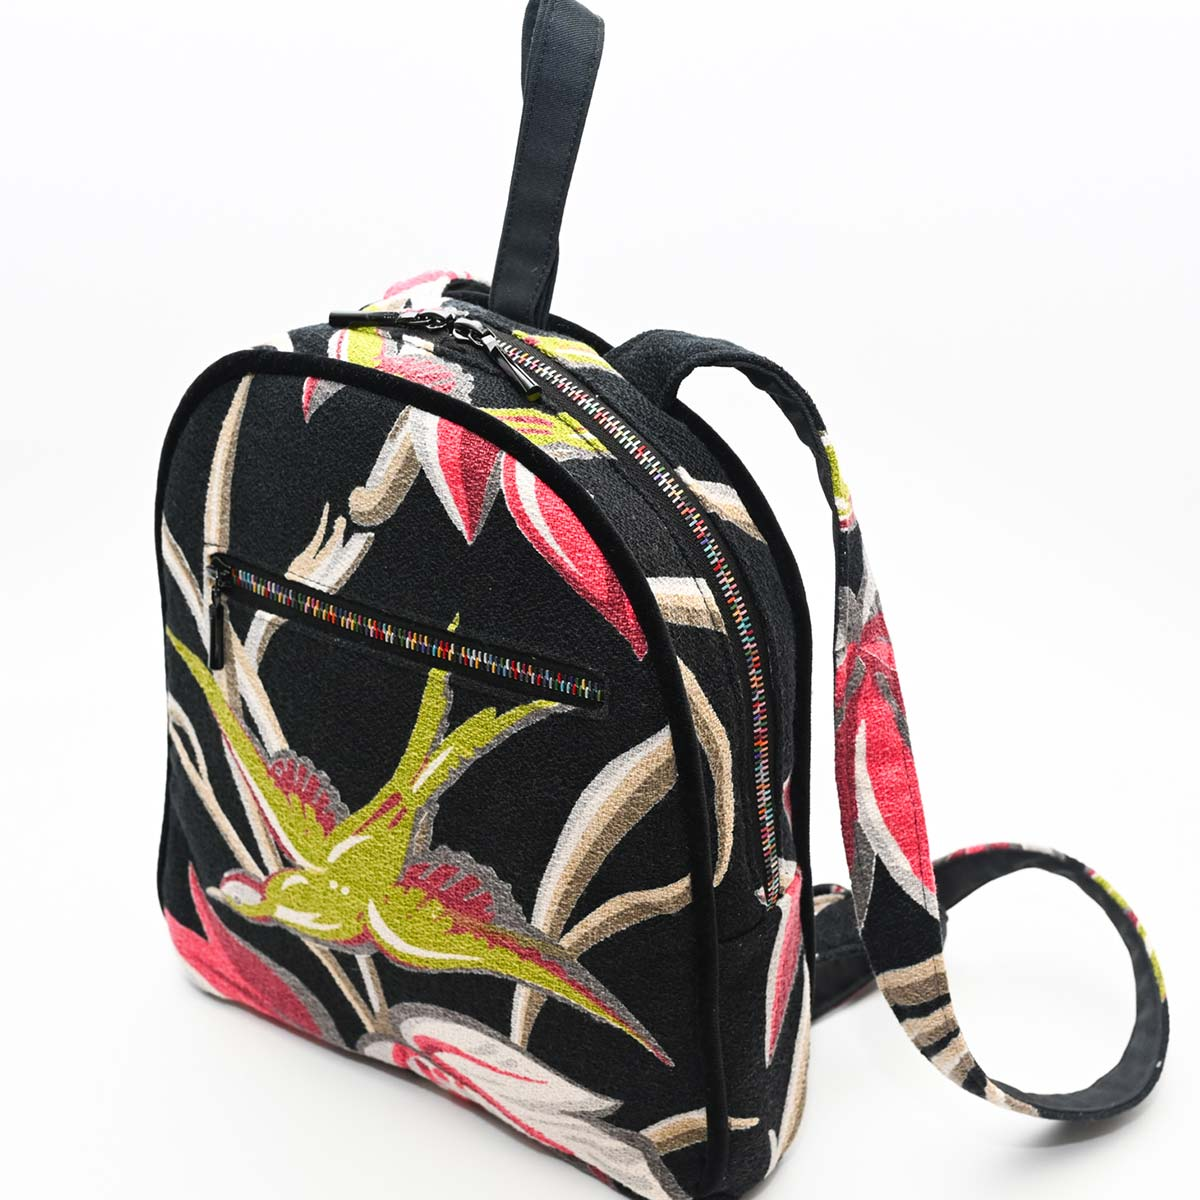 backpack palm bird motif pn black DSC 6420